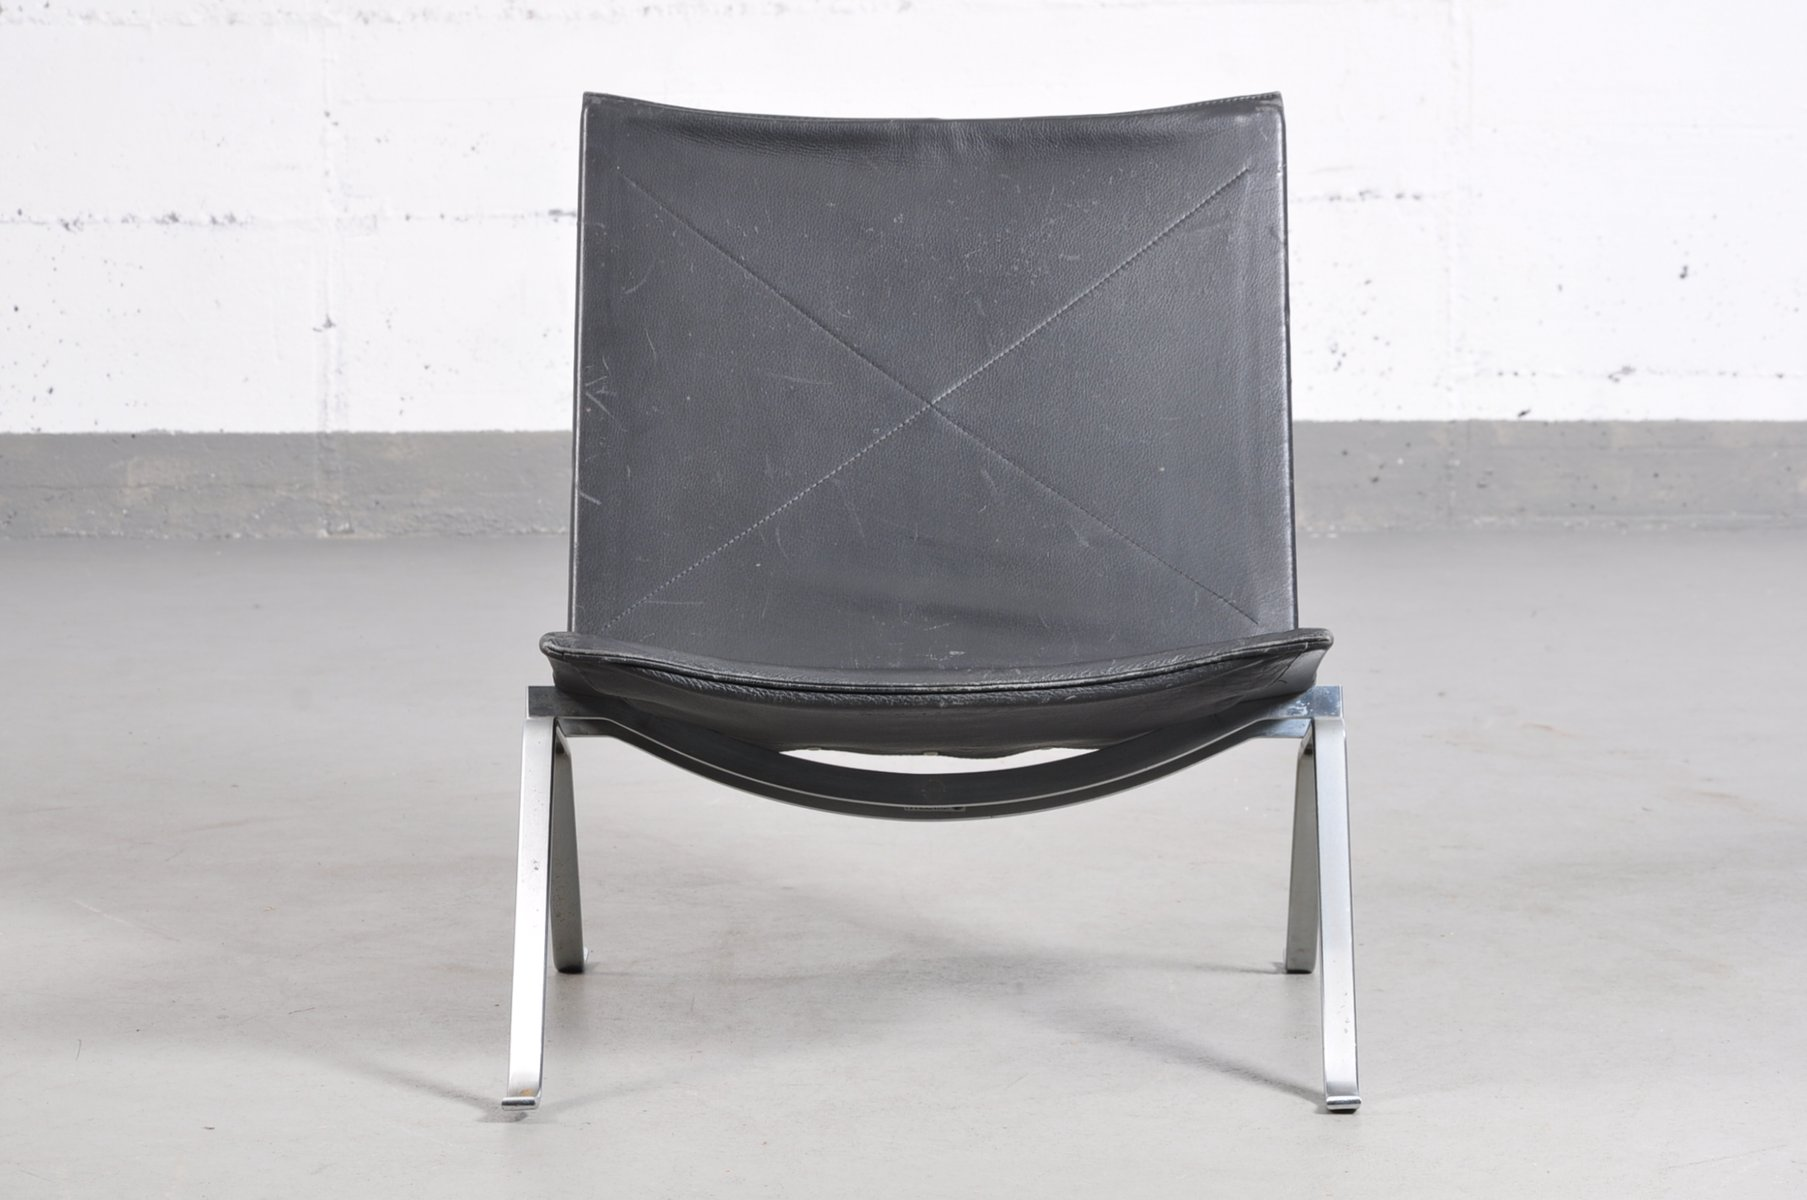 Vintage PK 22 Black Leather Chair by Poul Kj¦rholm for Fritz